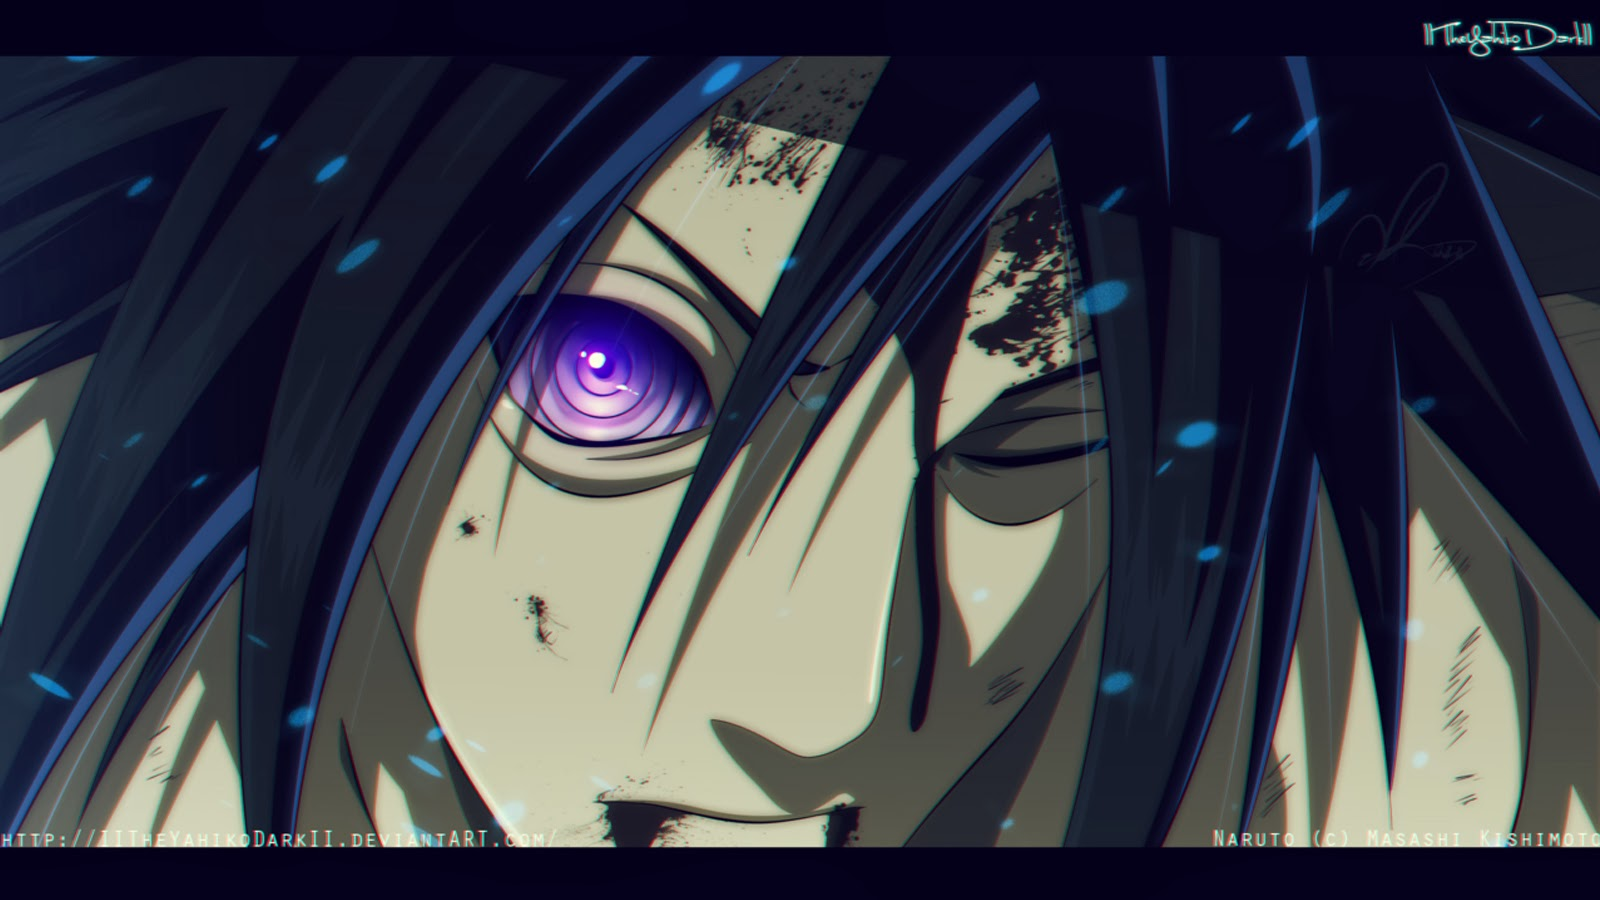 - Rinnegan wallpaper hd ...